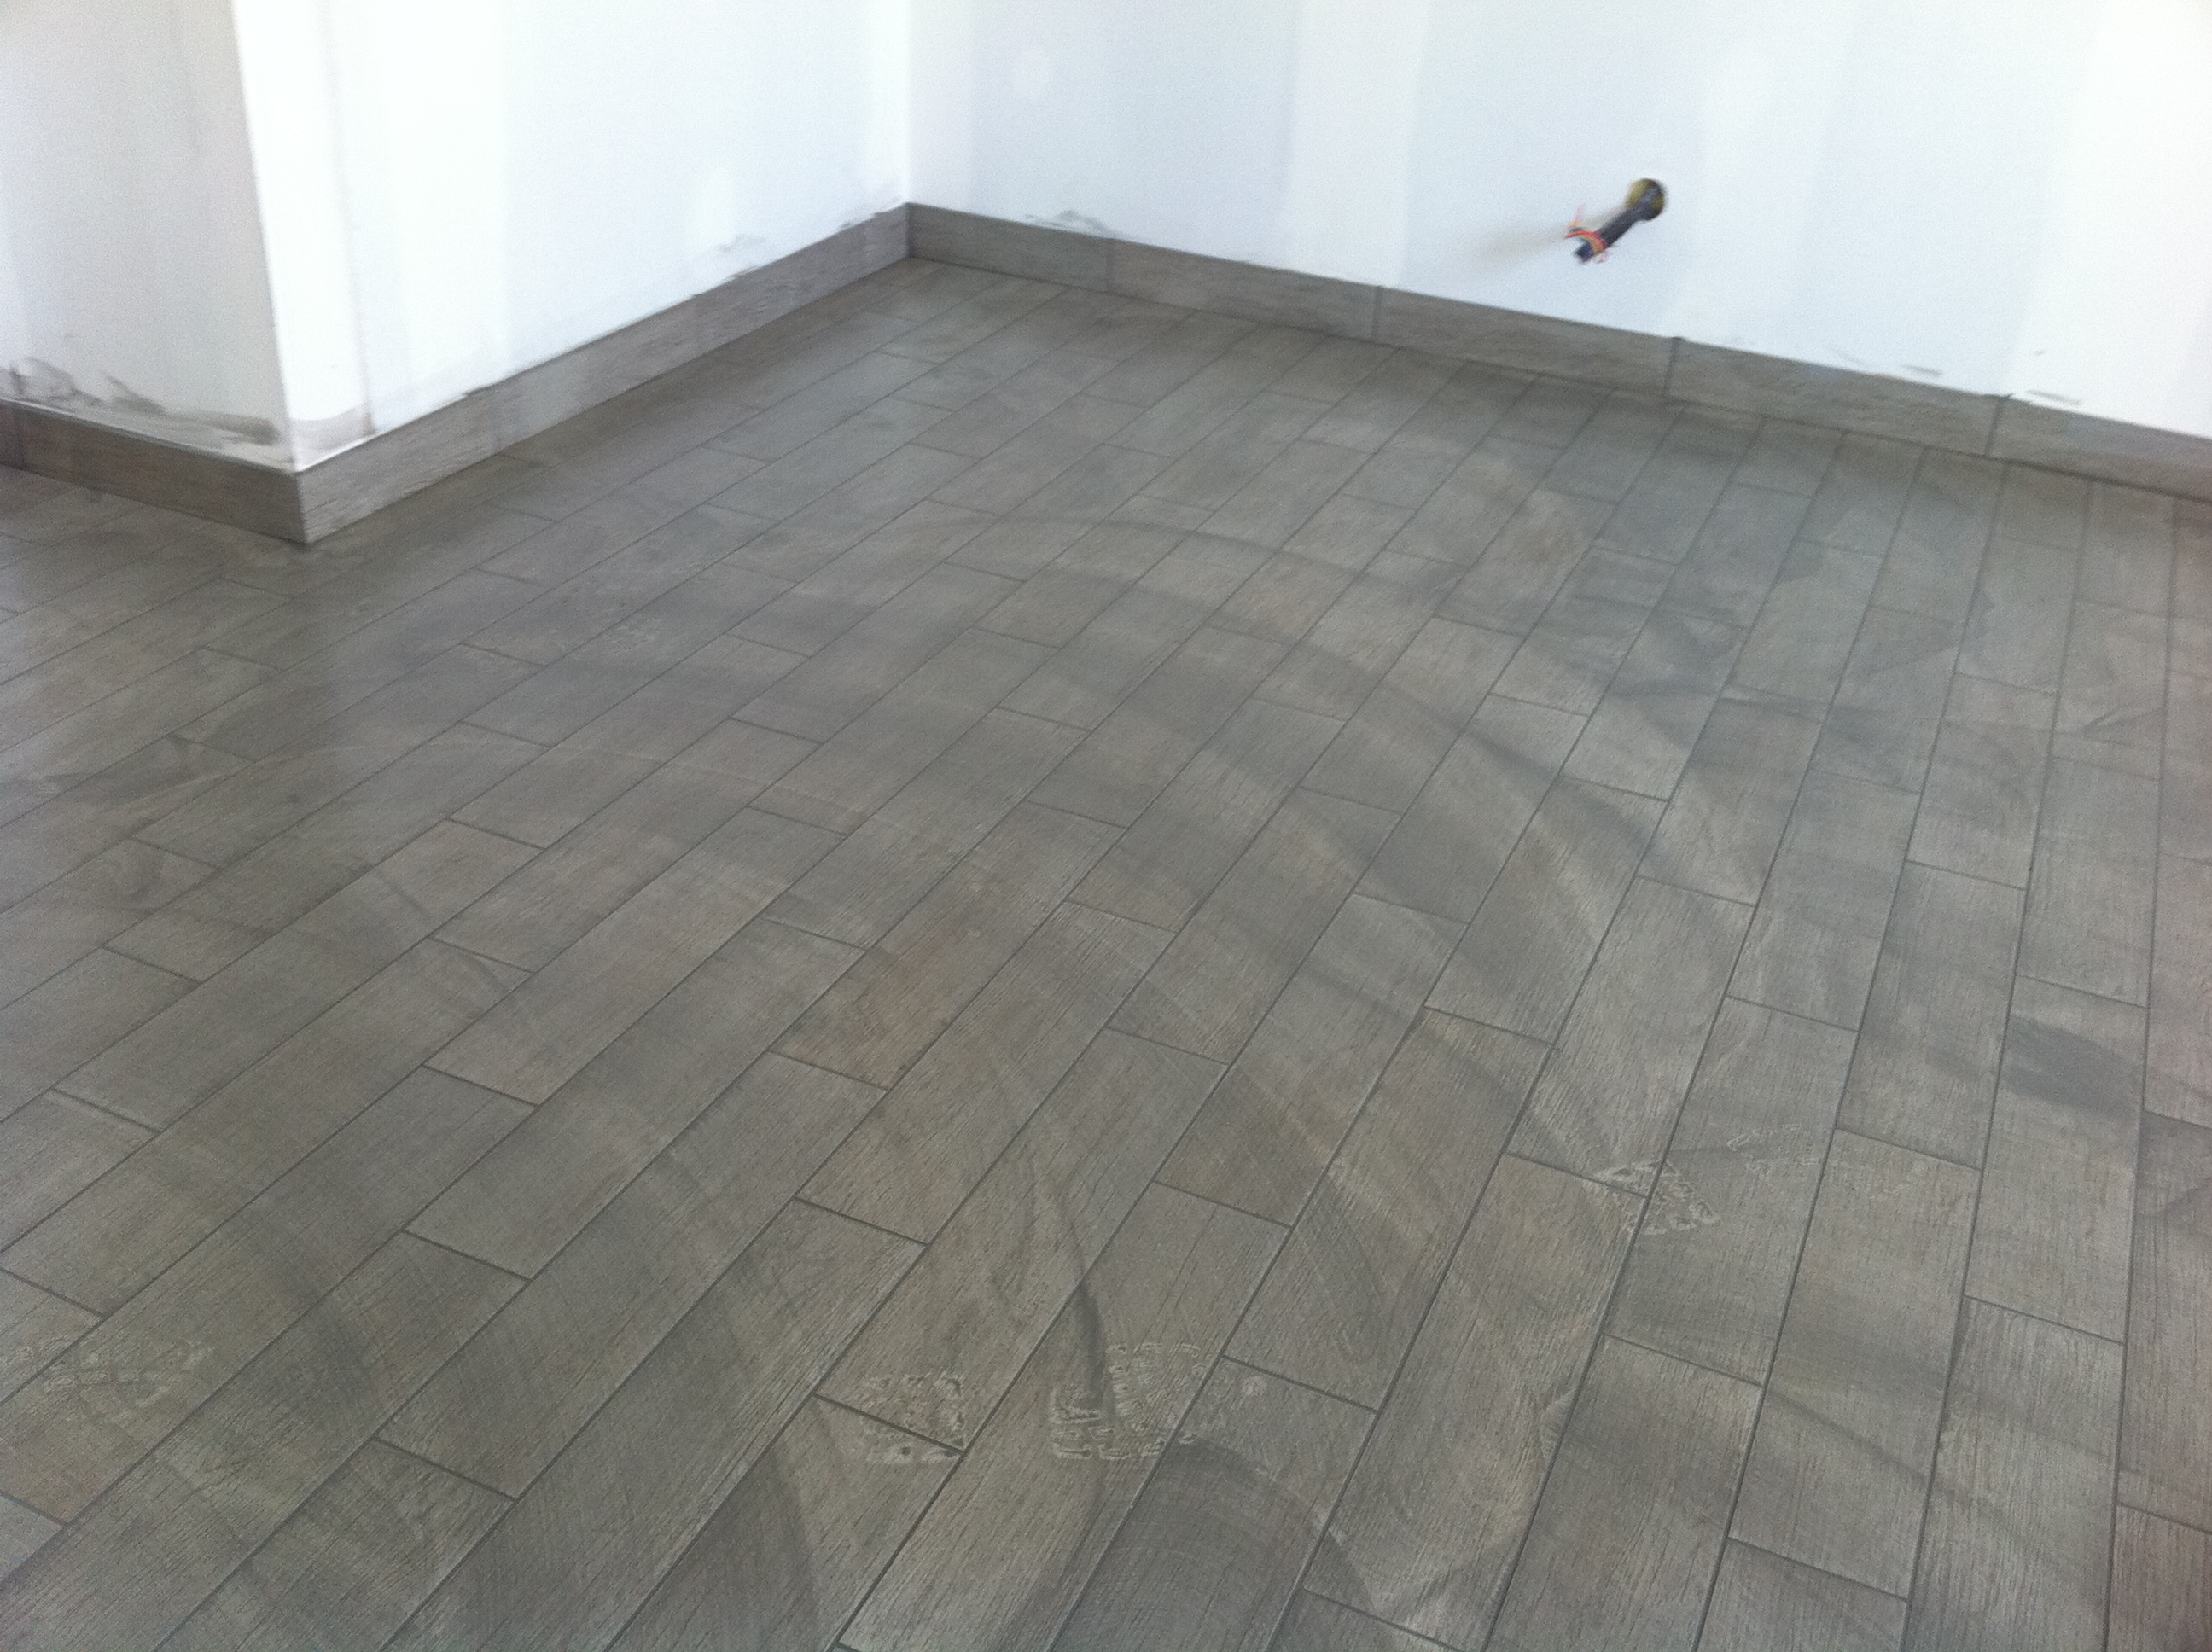 Carrelage imitation parquet pas cher for Pose de carrelage imitation parquet